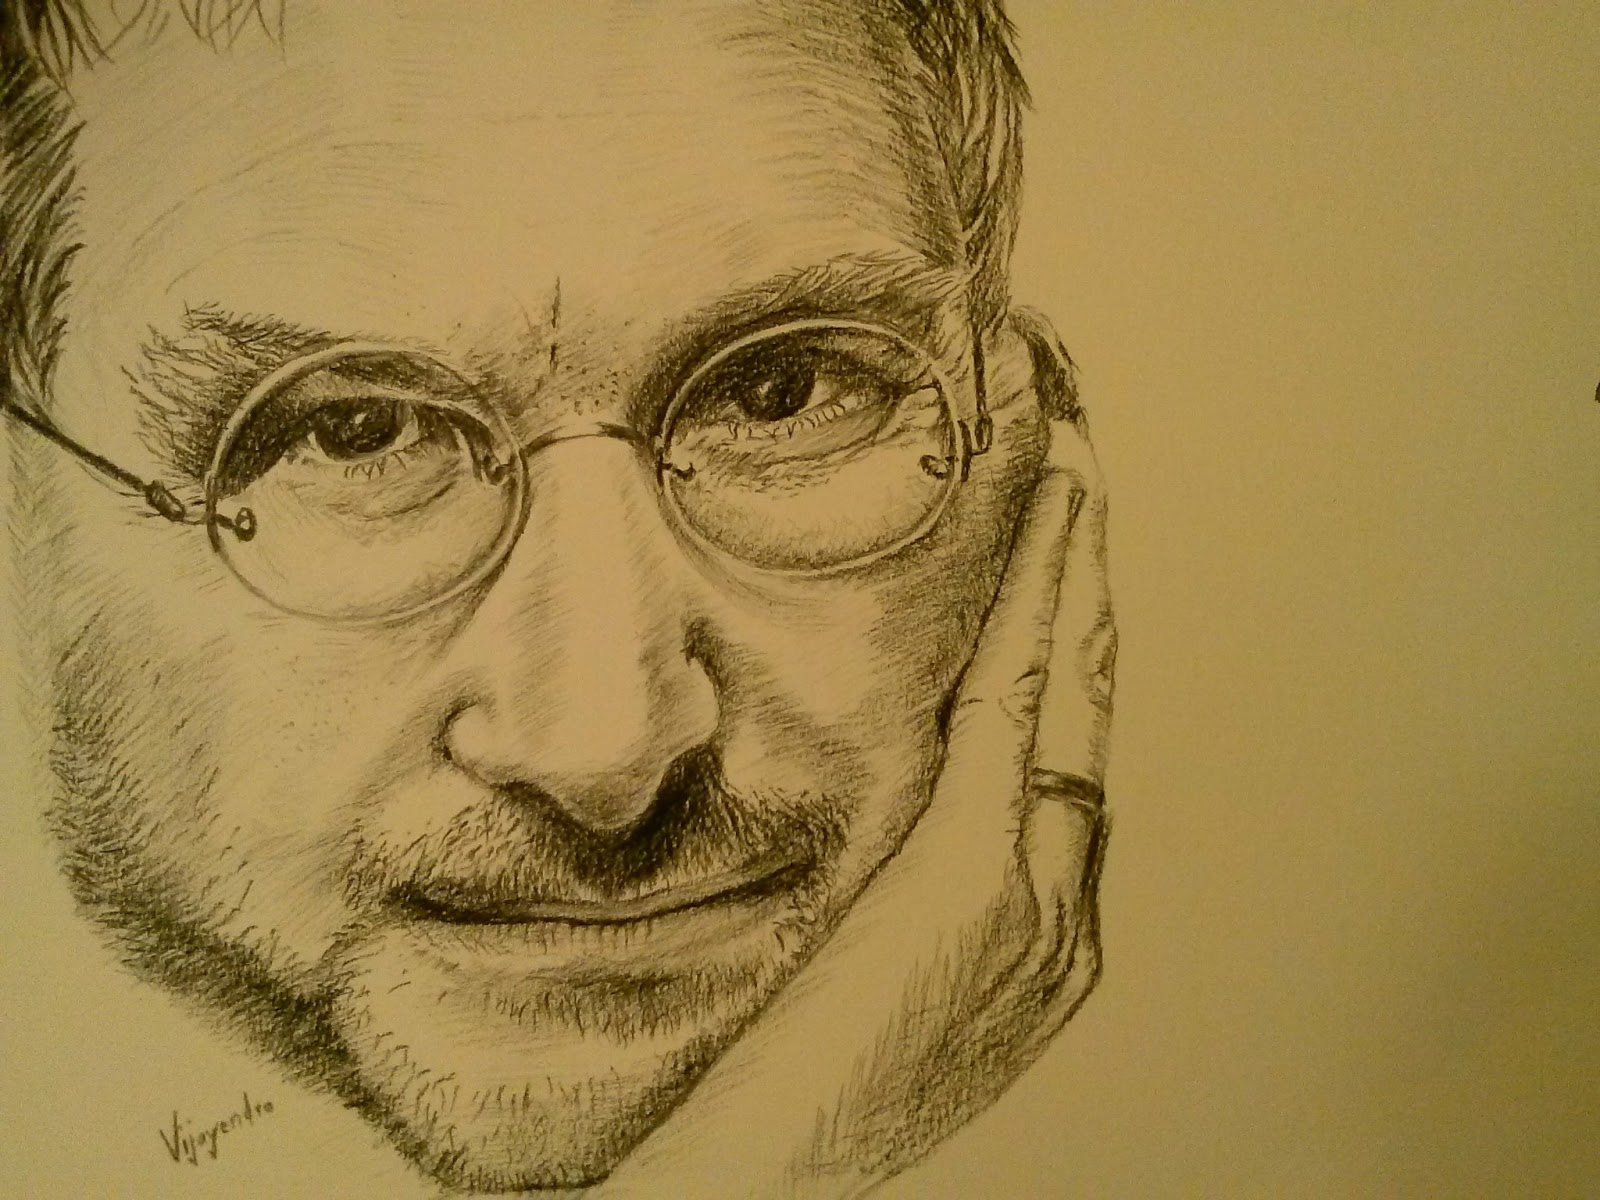 Pencil sketch of steve jobs